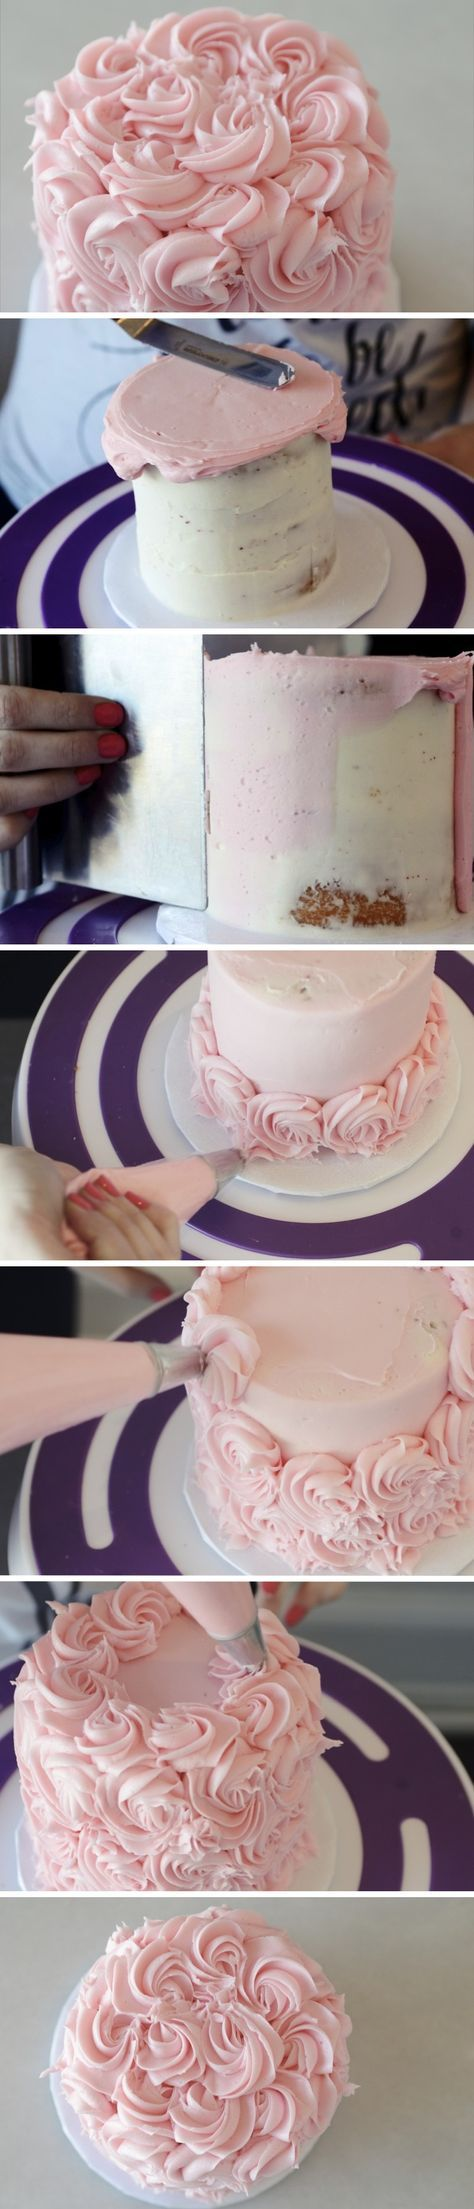 220 best images about russian icing tips on pinterest for How to decorate a cake for beginners